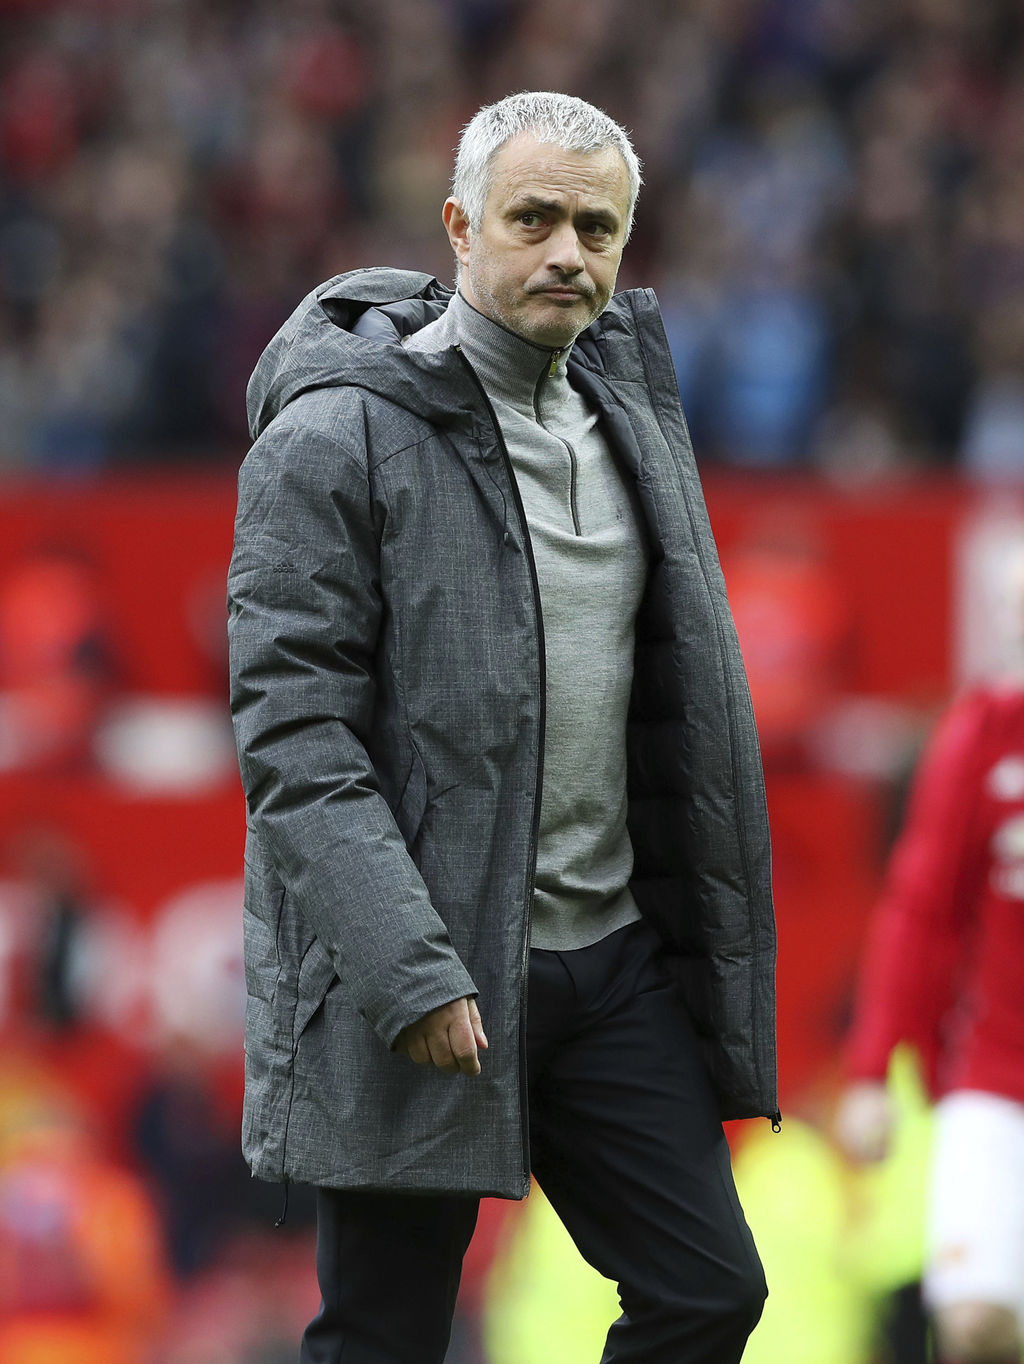 Manchester United manager Jose Mourinho looks dejected after their English Premier League soccer match against AFC Bournemouth at Old T...